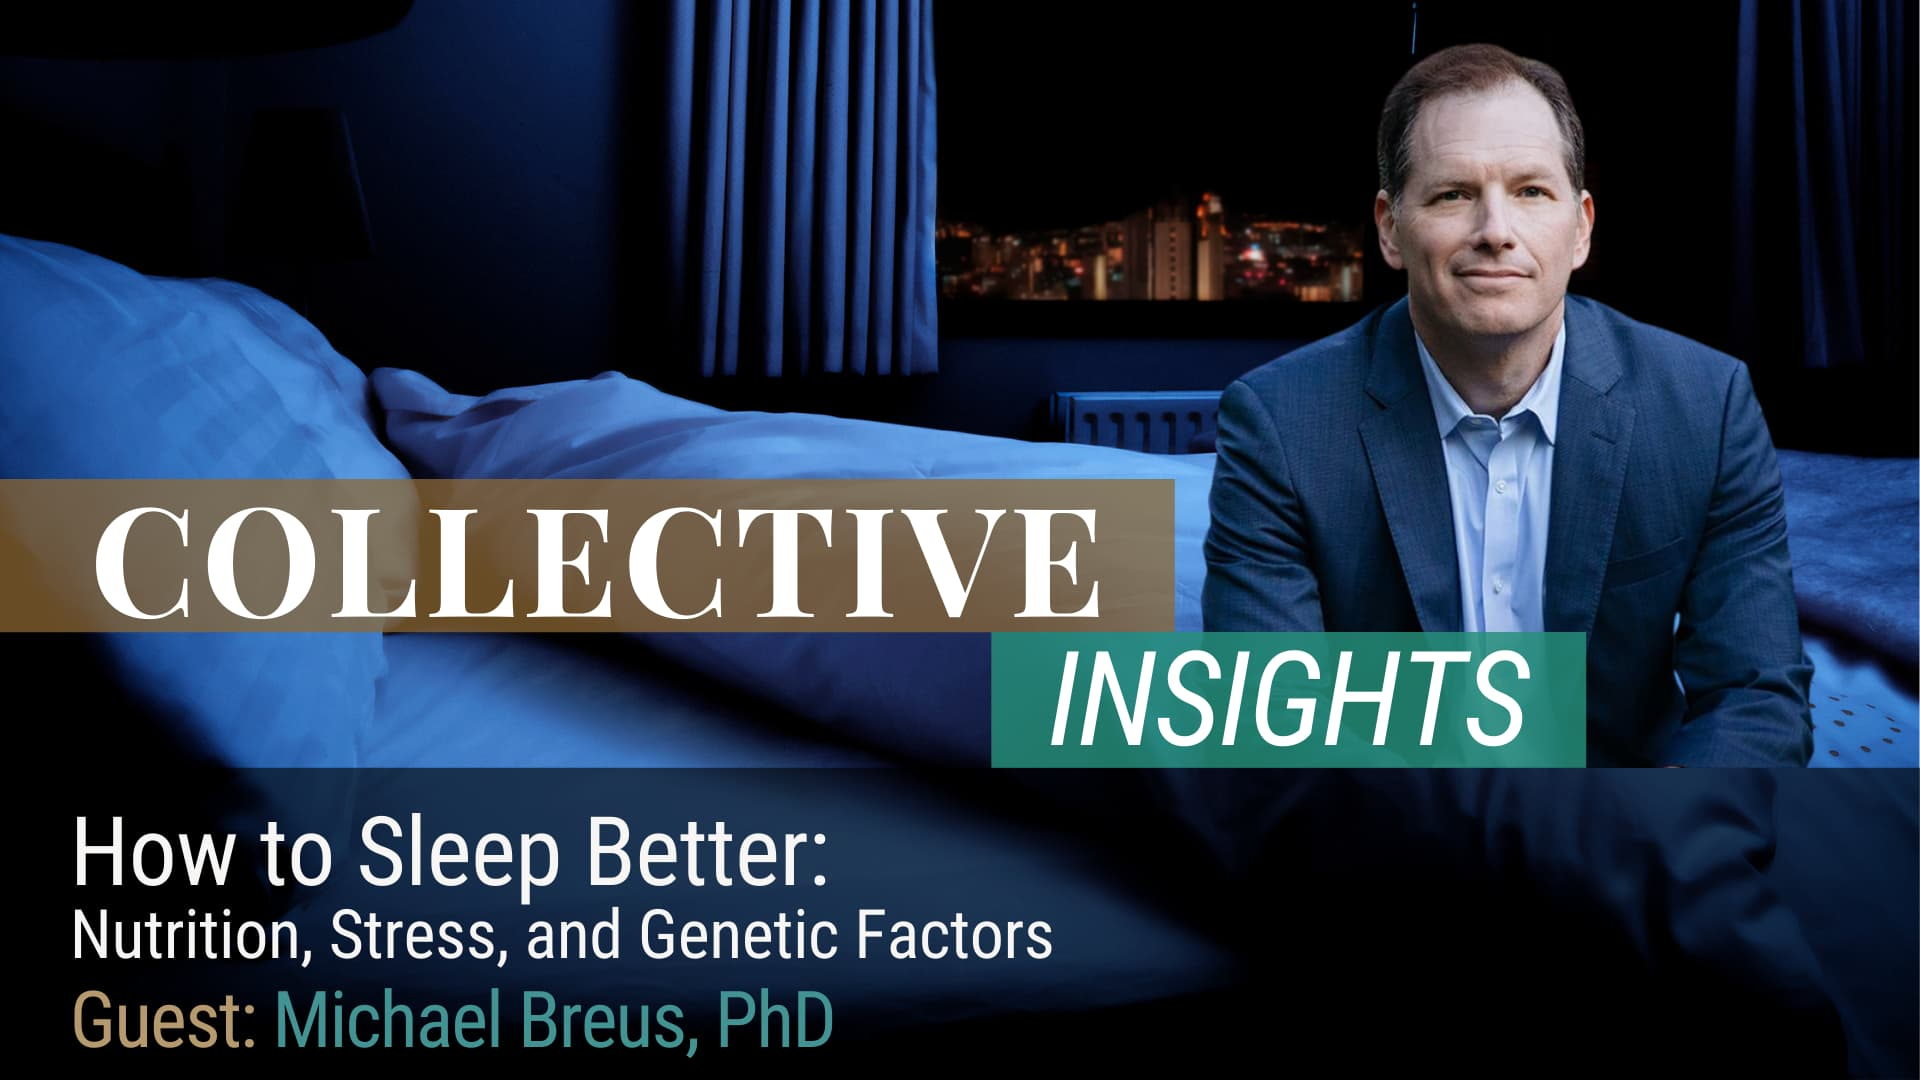 How to Sleep Better: Nutrition, Stress, and Genetic Factors